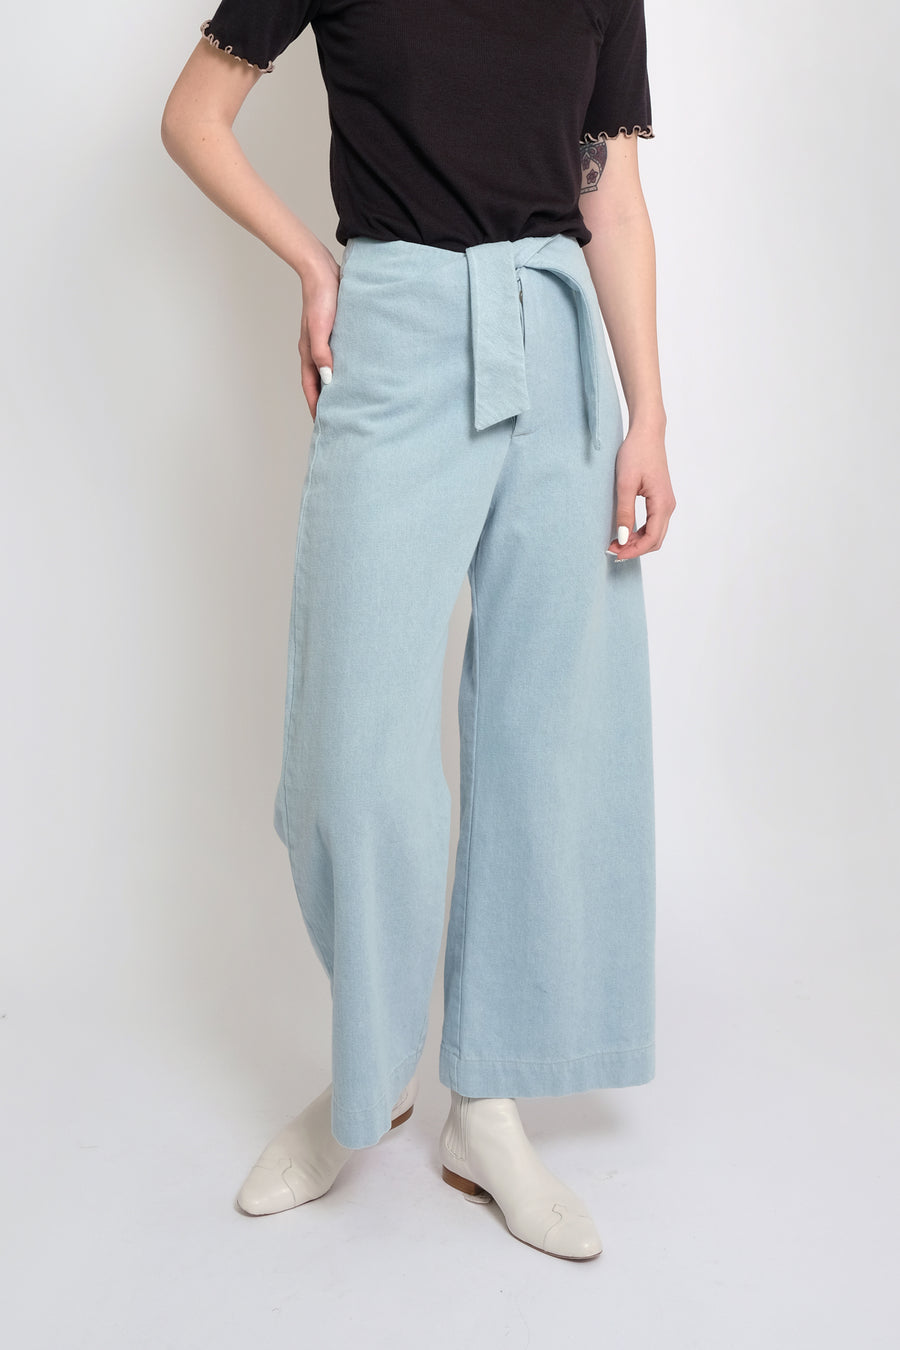 Sky Blue Denim Knotted Sailor Pant